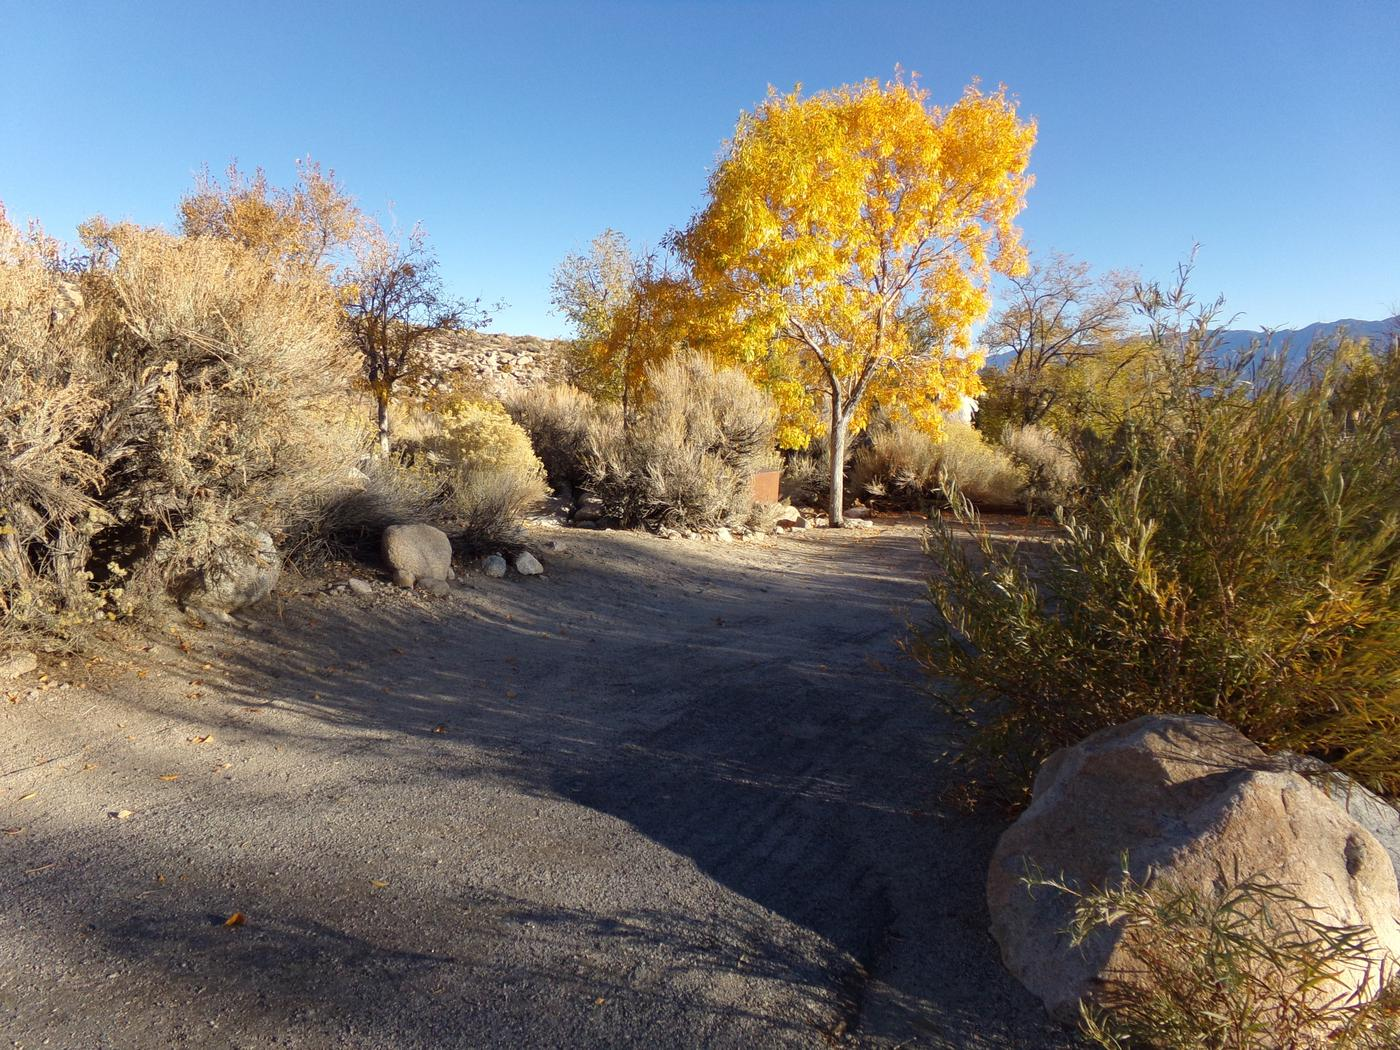 Parking space and entrance to site #34, Lone Pine Campground.